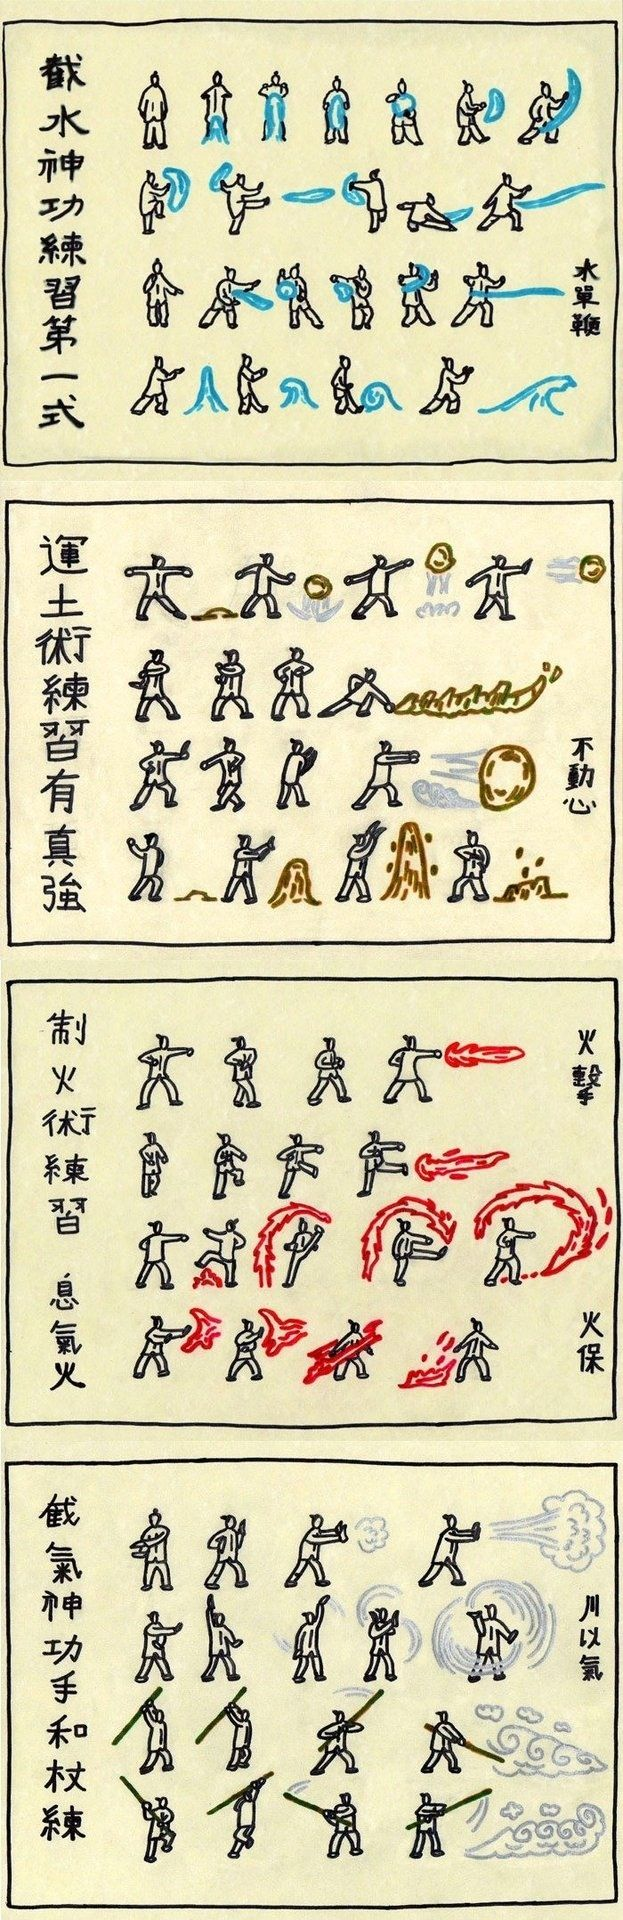 Use these images to develop sequences of movement material? An illustration of the four elemental bending styles in the world of The Last Avatar